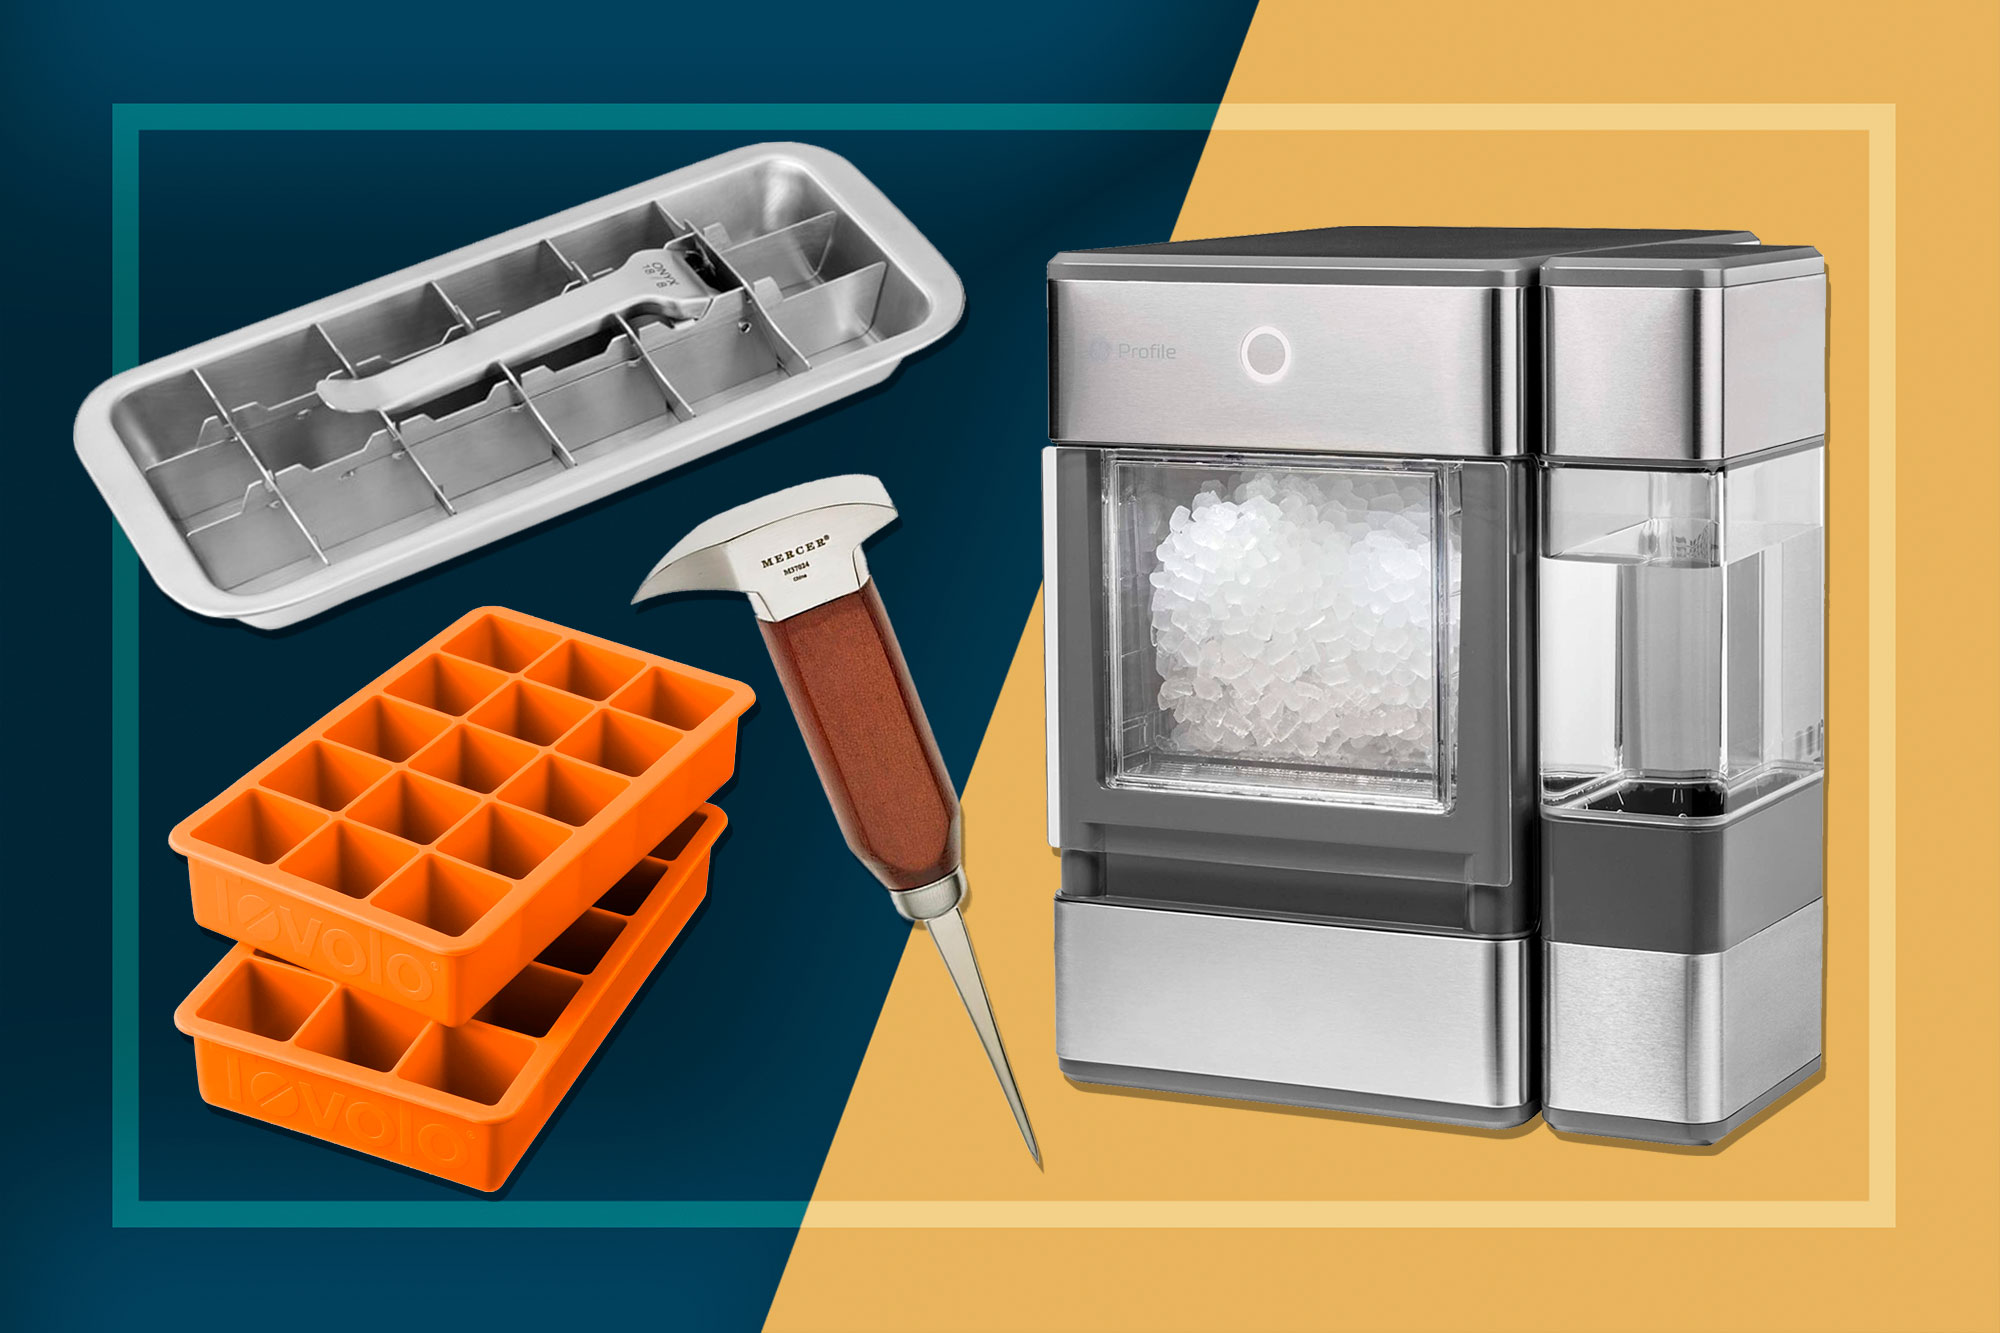 Ice Trays, Ice Maker, and an Ice Pick